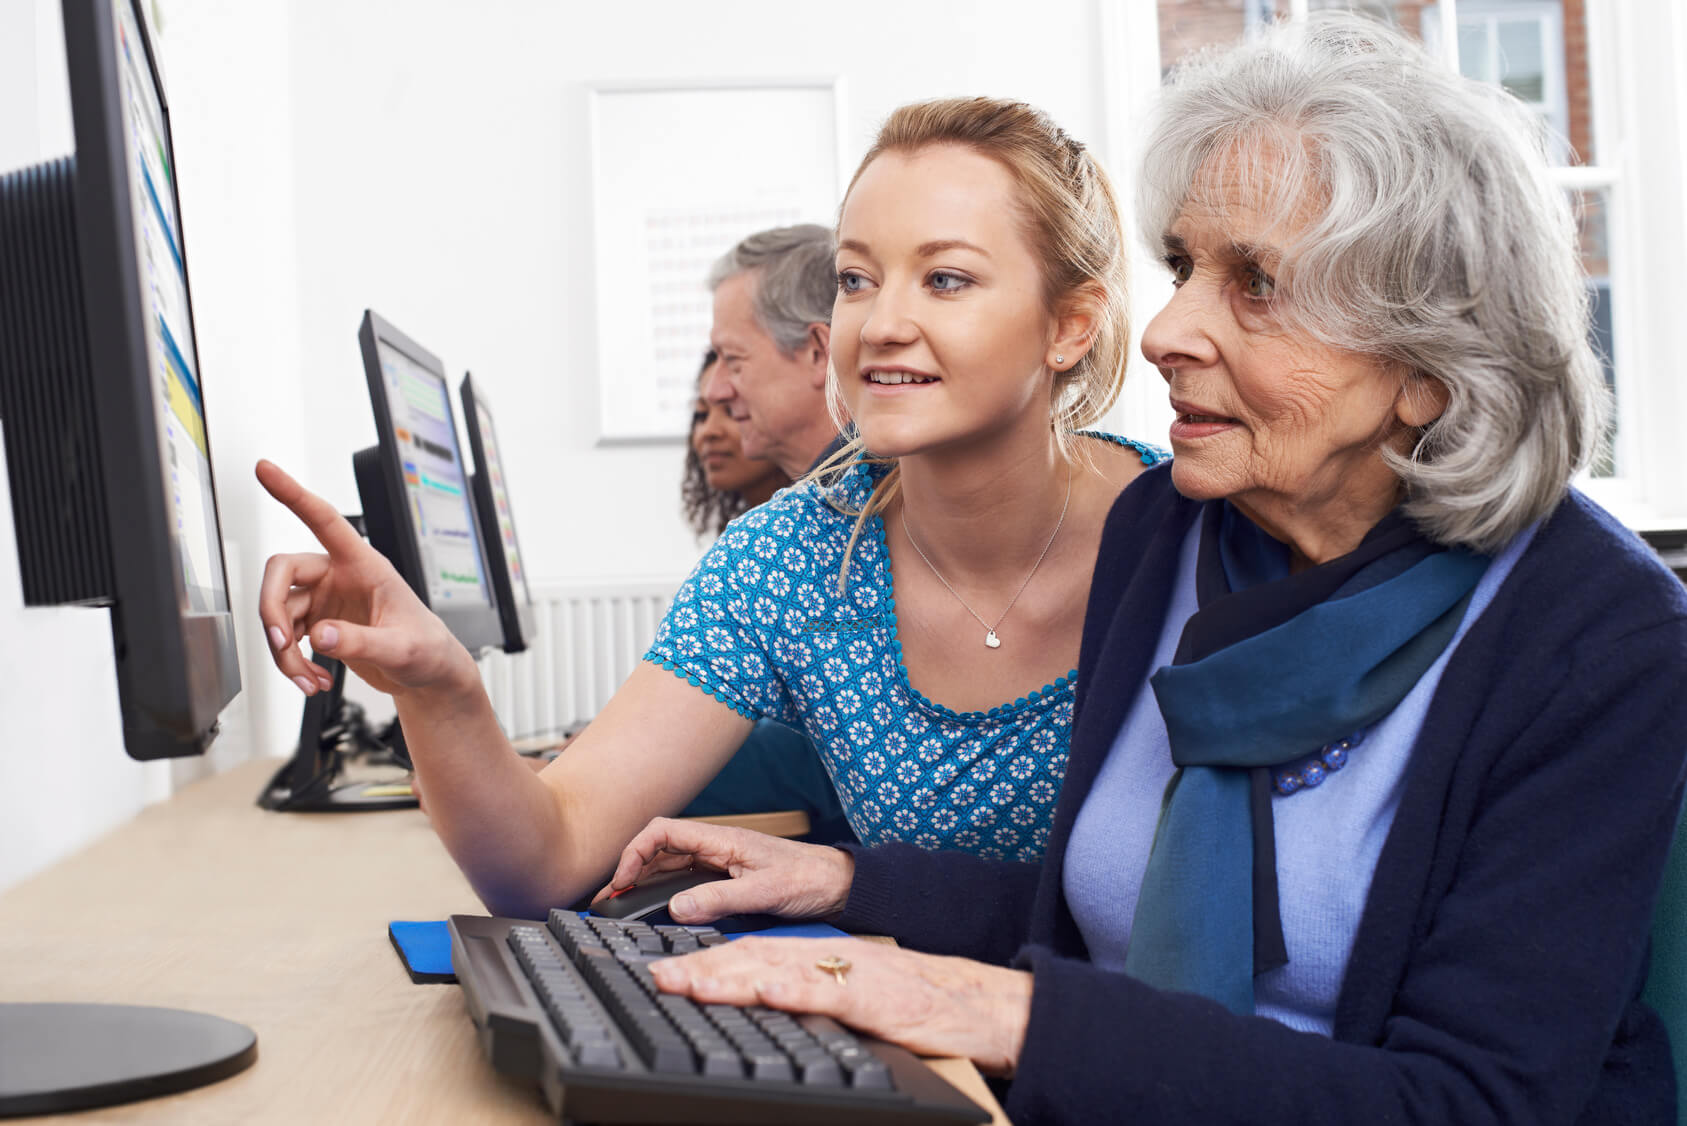 How Do You Create Daily Social Integration With Your Aging Parents?